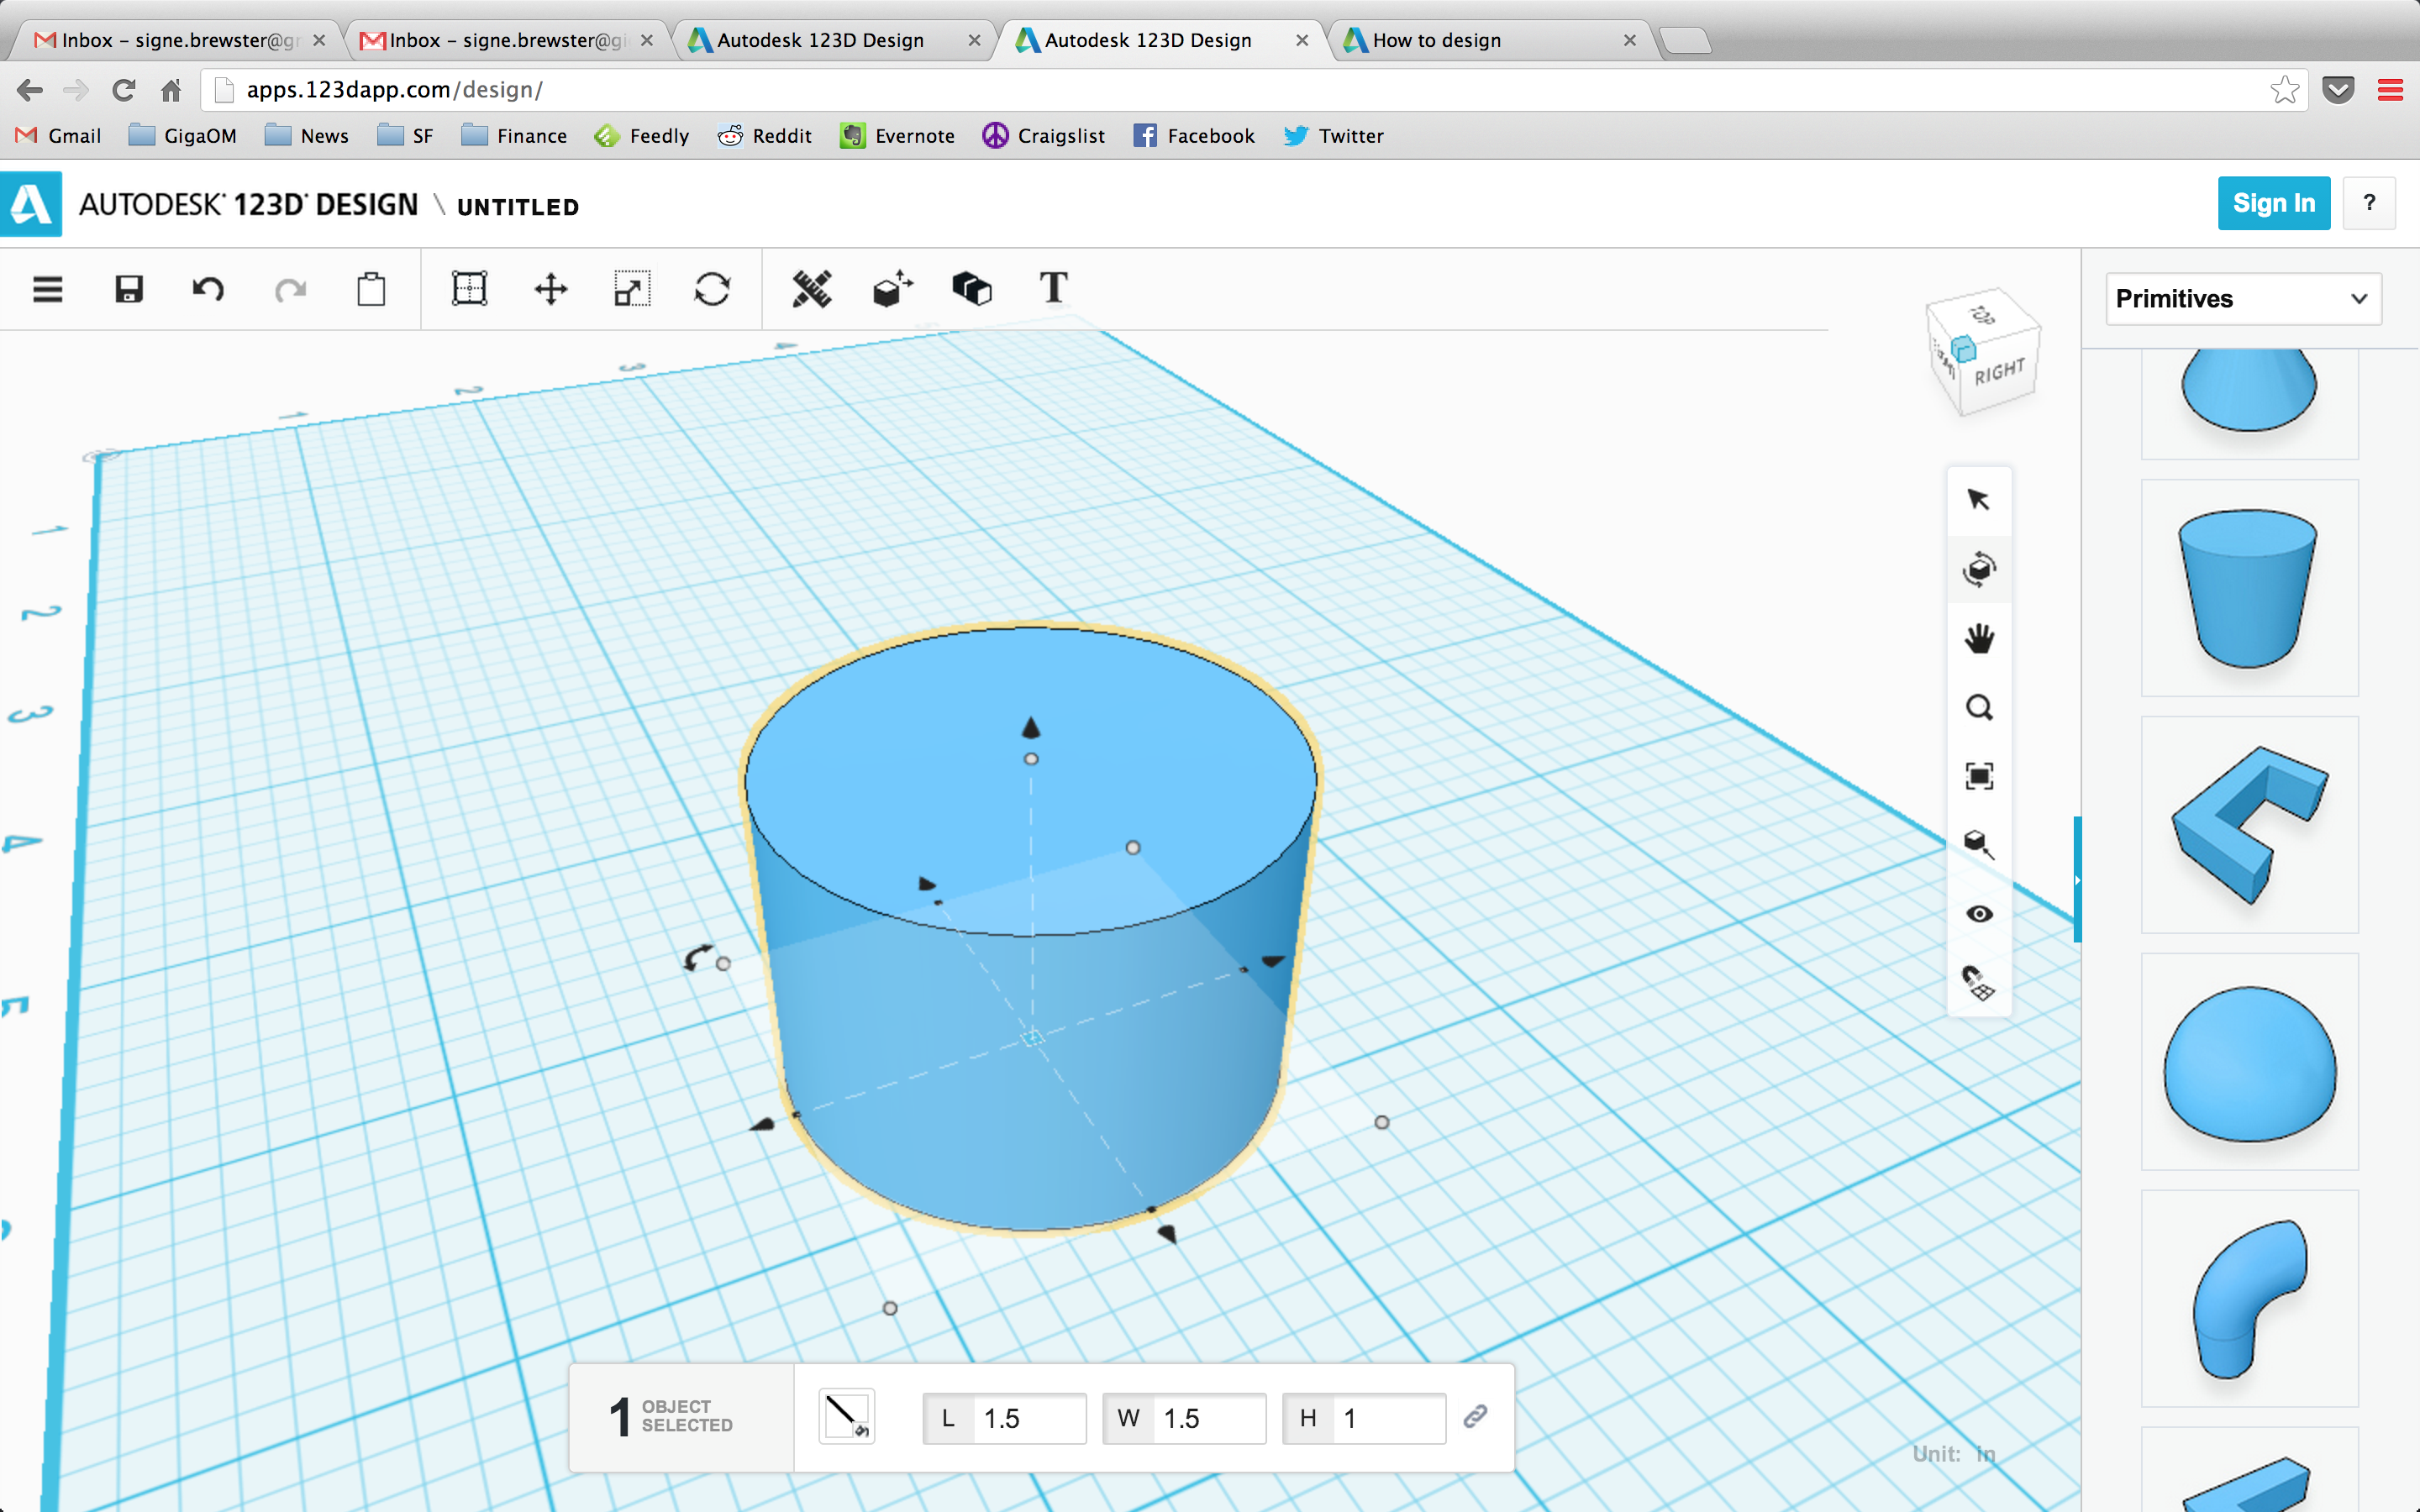 Making A Maker Designing Replacement Part With Autodesk 123D And